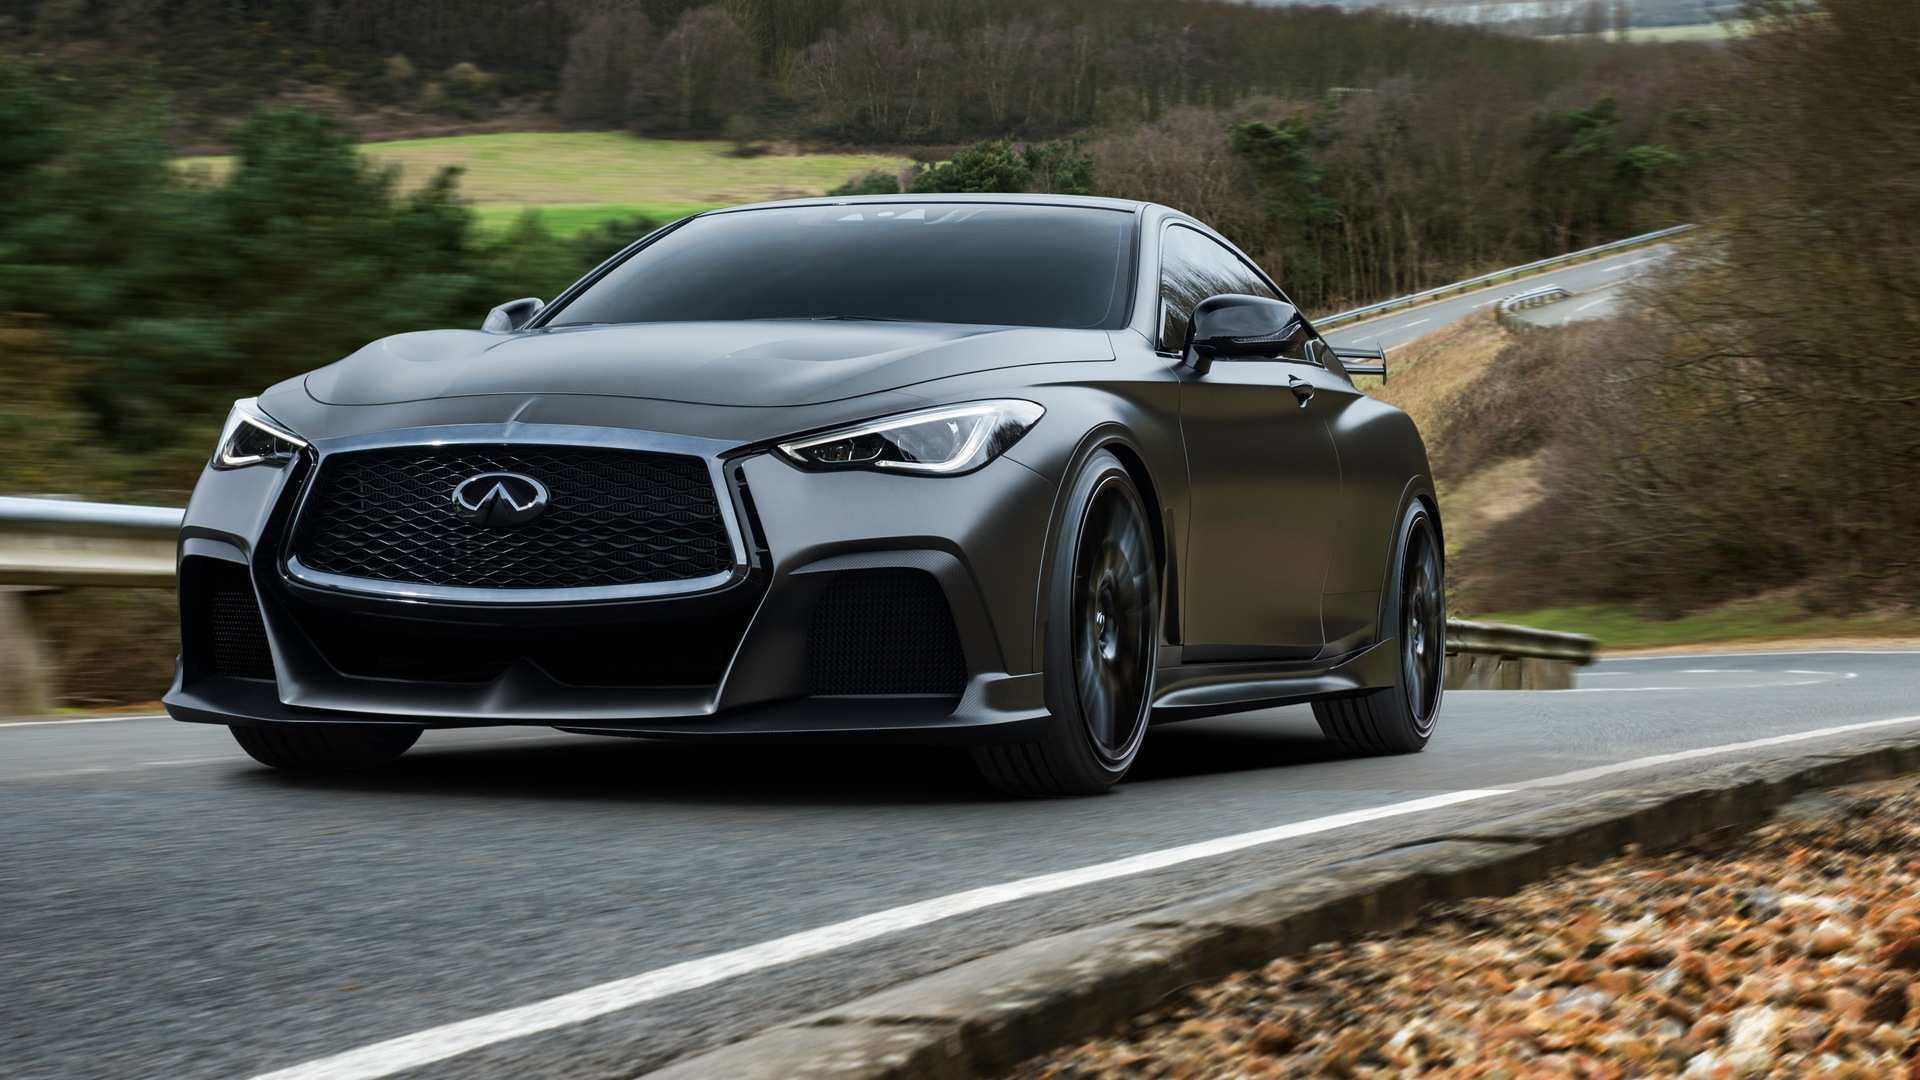 15 A Infiniti Coupe 2020 Price Design And Review